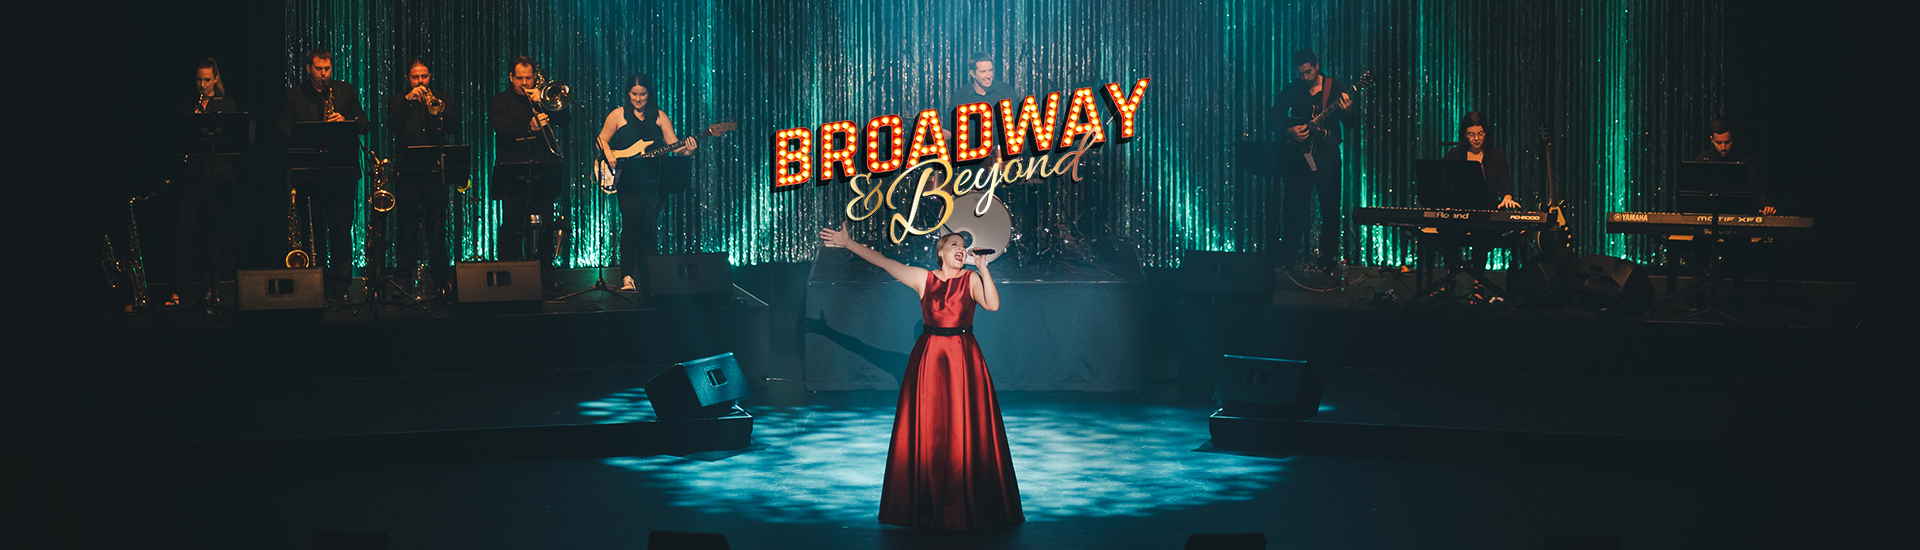 Broadway & Beyond 2021 - 1920x550 website promo banner 1.jpg